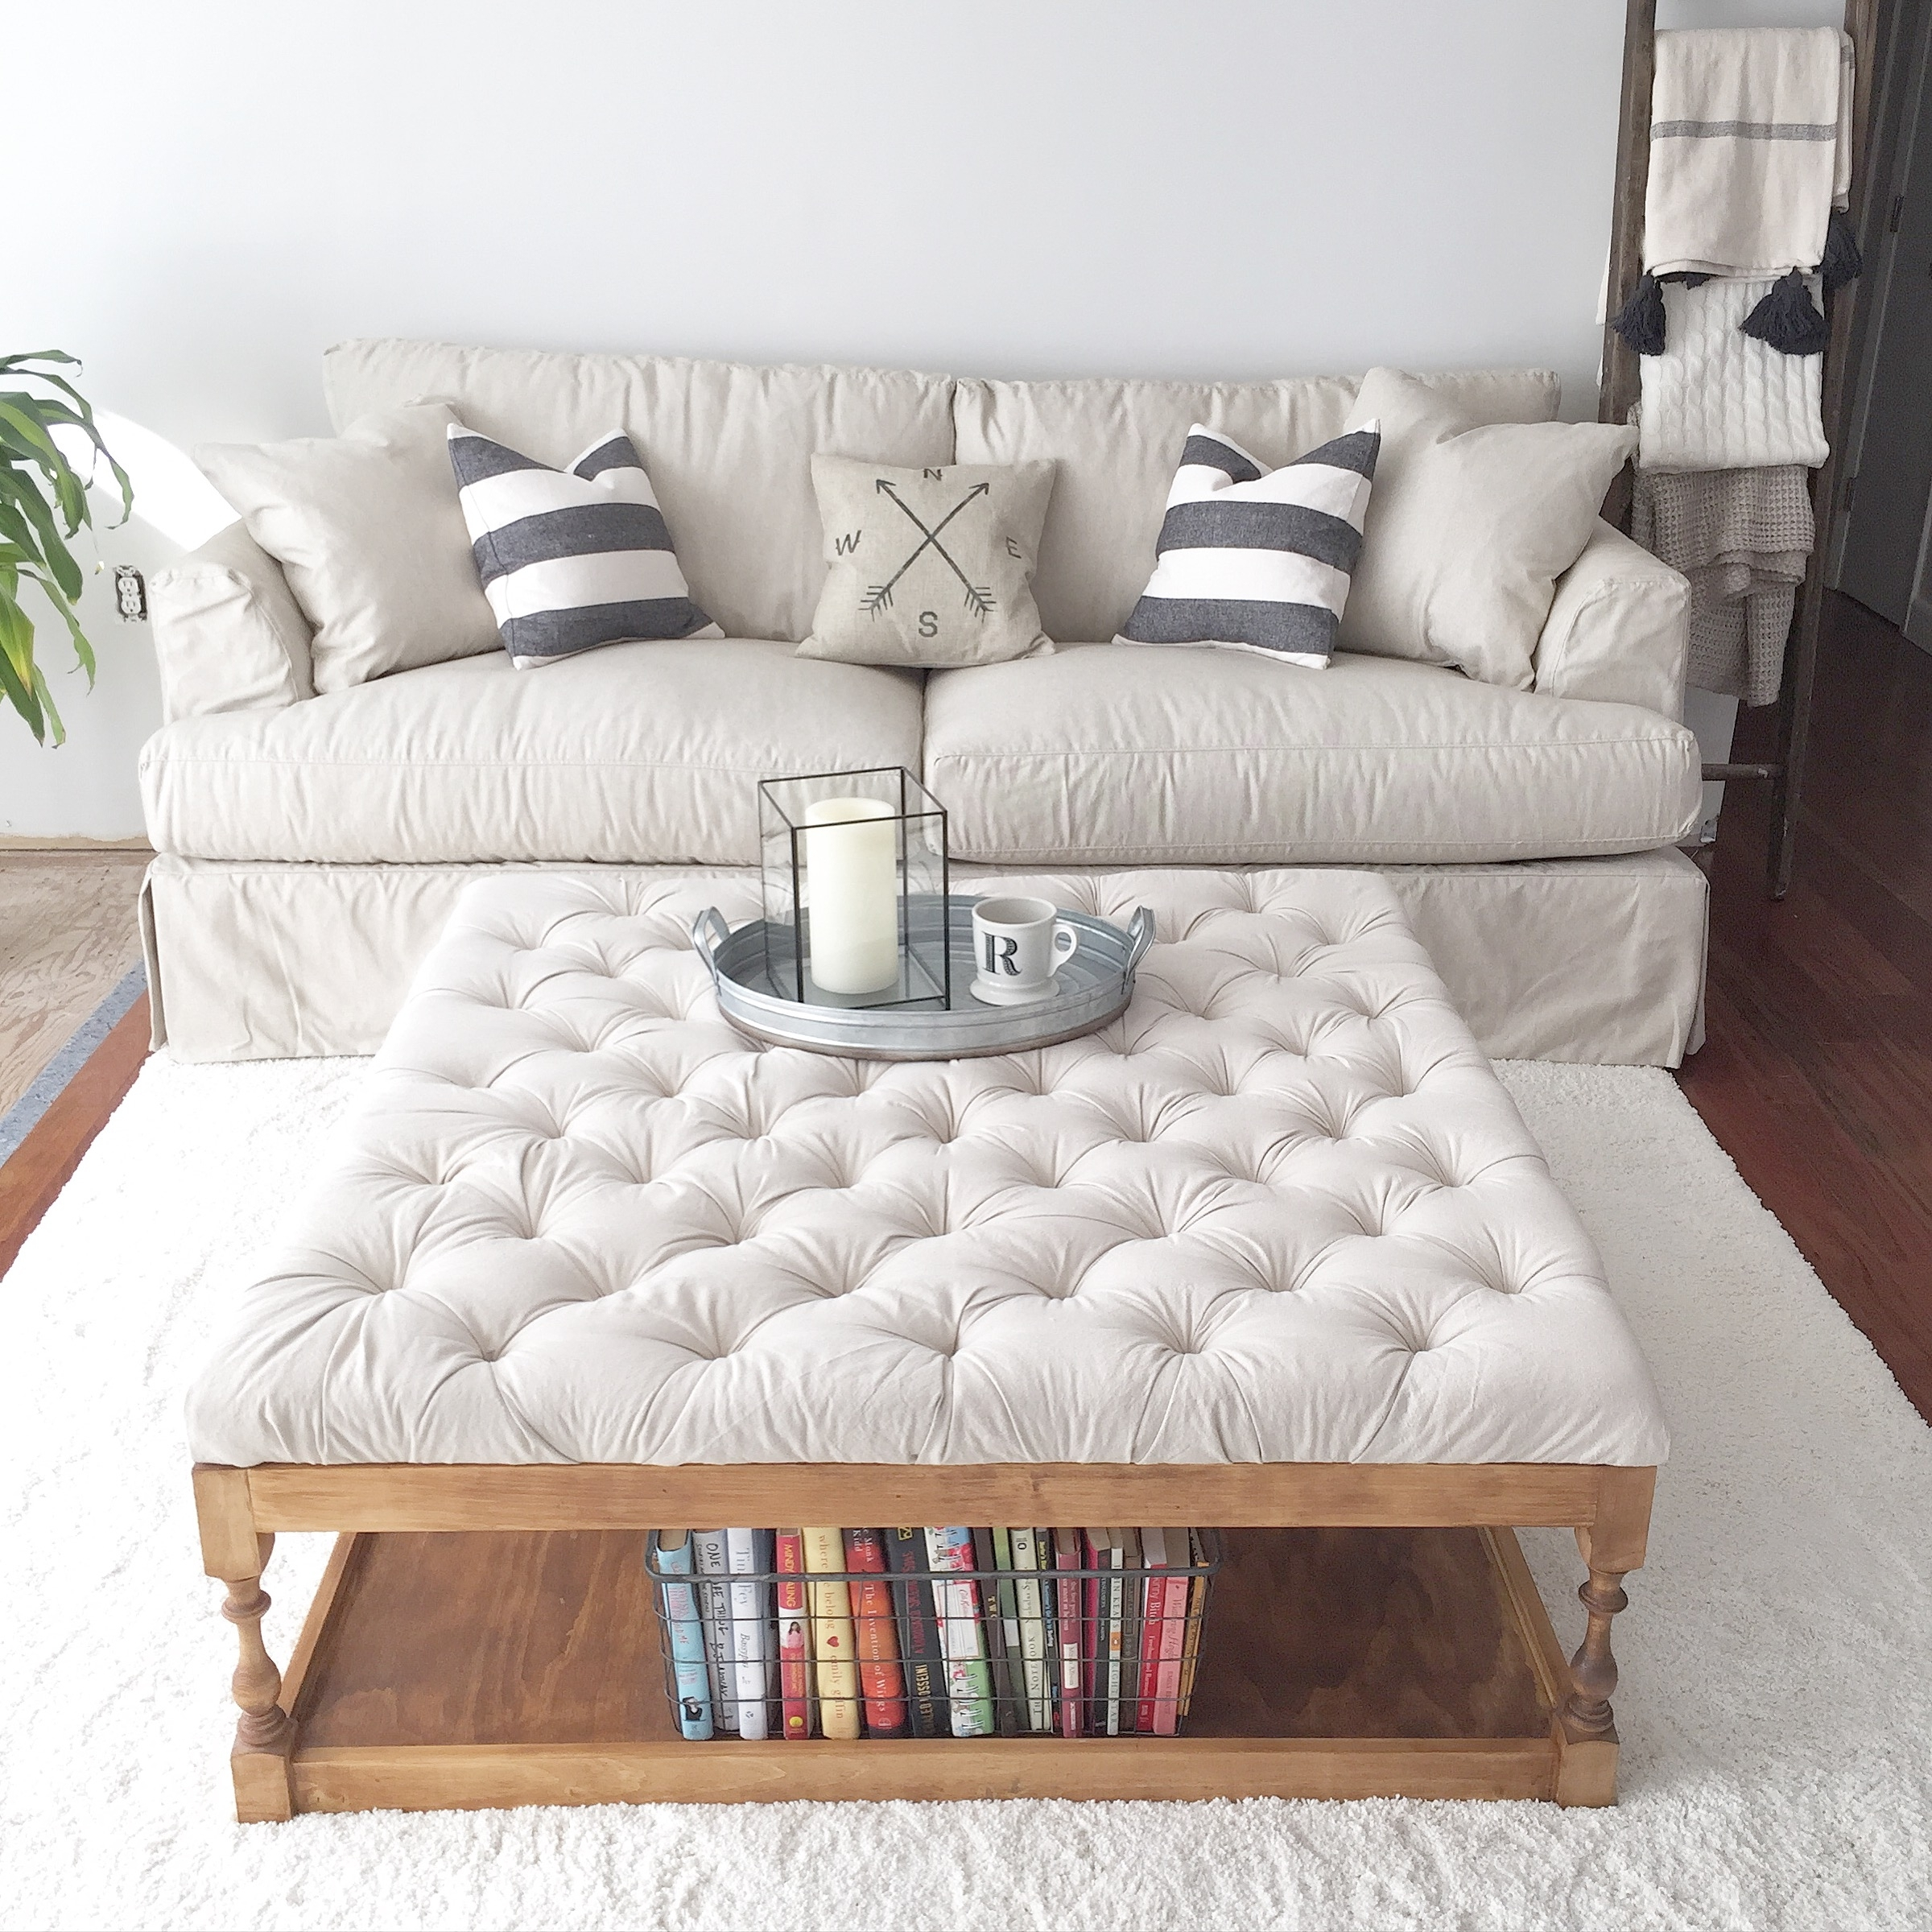 Royal Charm Button Tufted Coffee Tables For Interior | Trends4Us with Round Button Tufted Coffee Tables (Image 23 of 30)